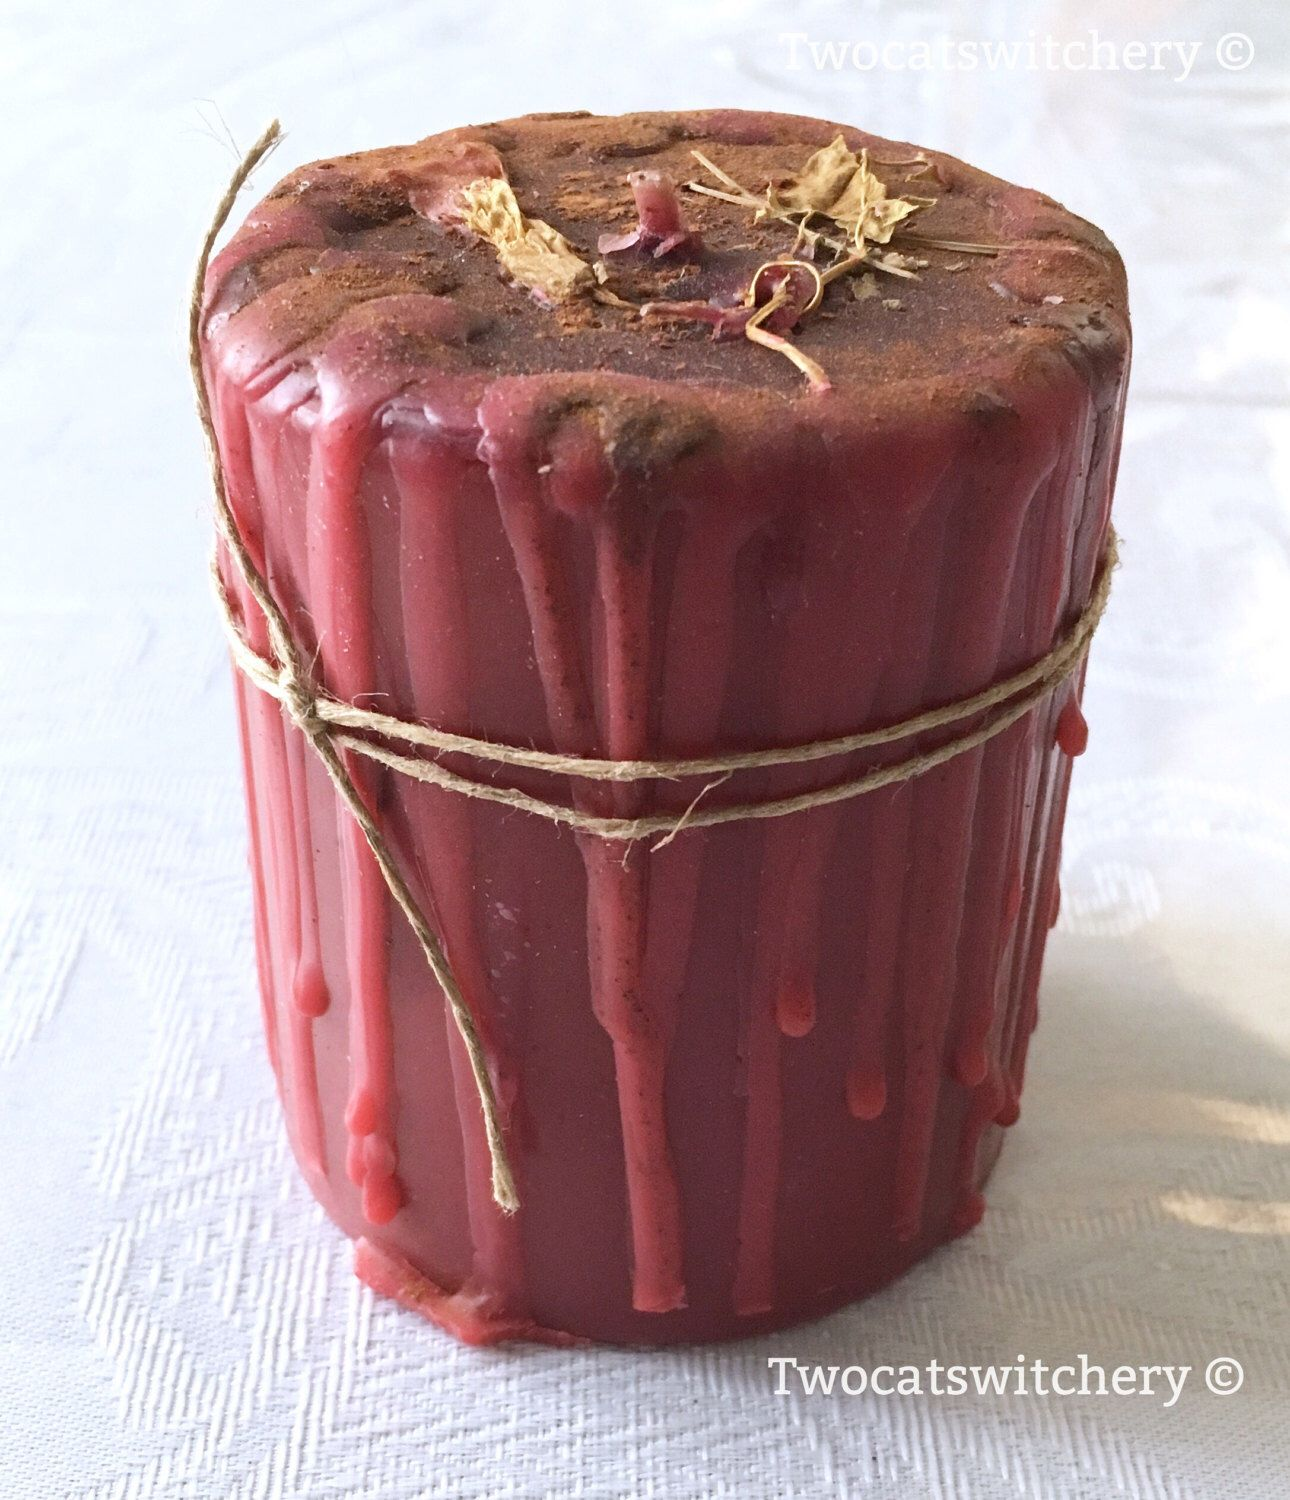 Wiccan Spell Candle Handmade Candles Spell Ritual Candle